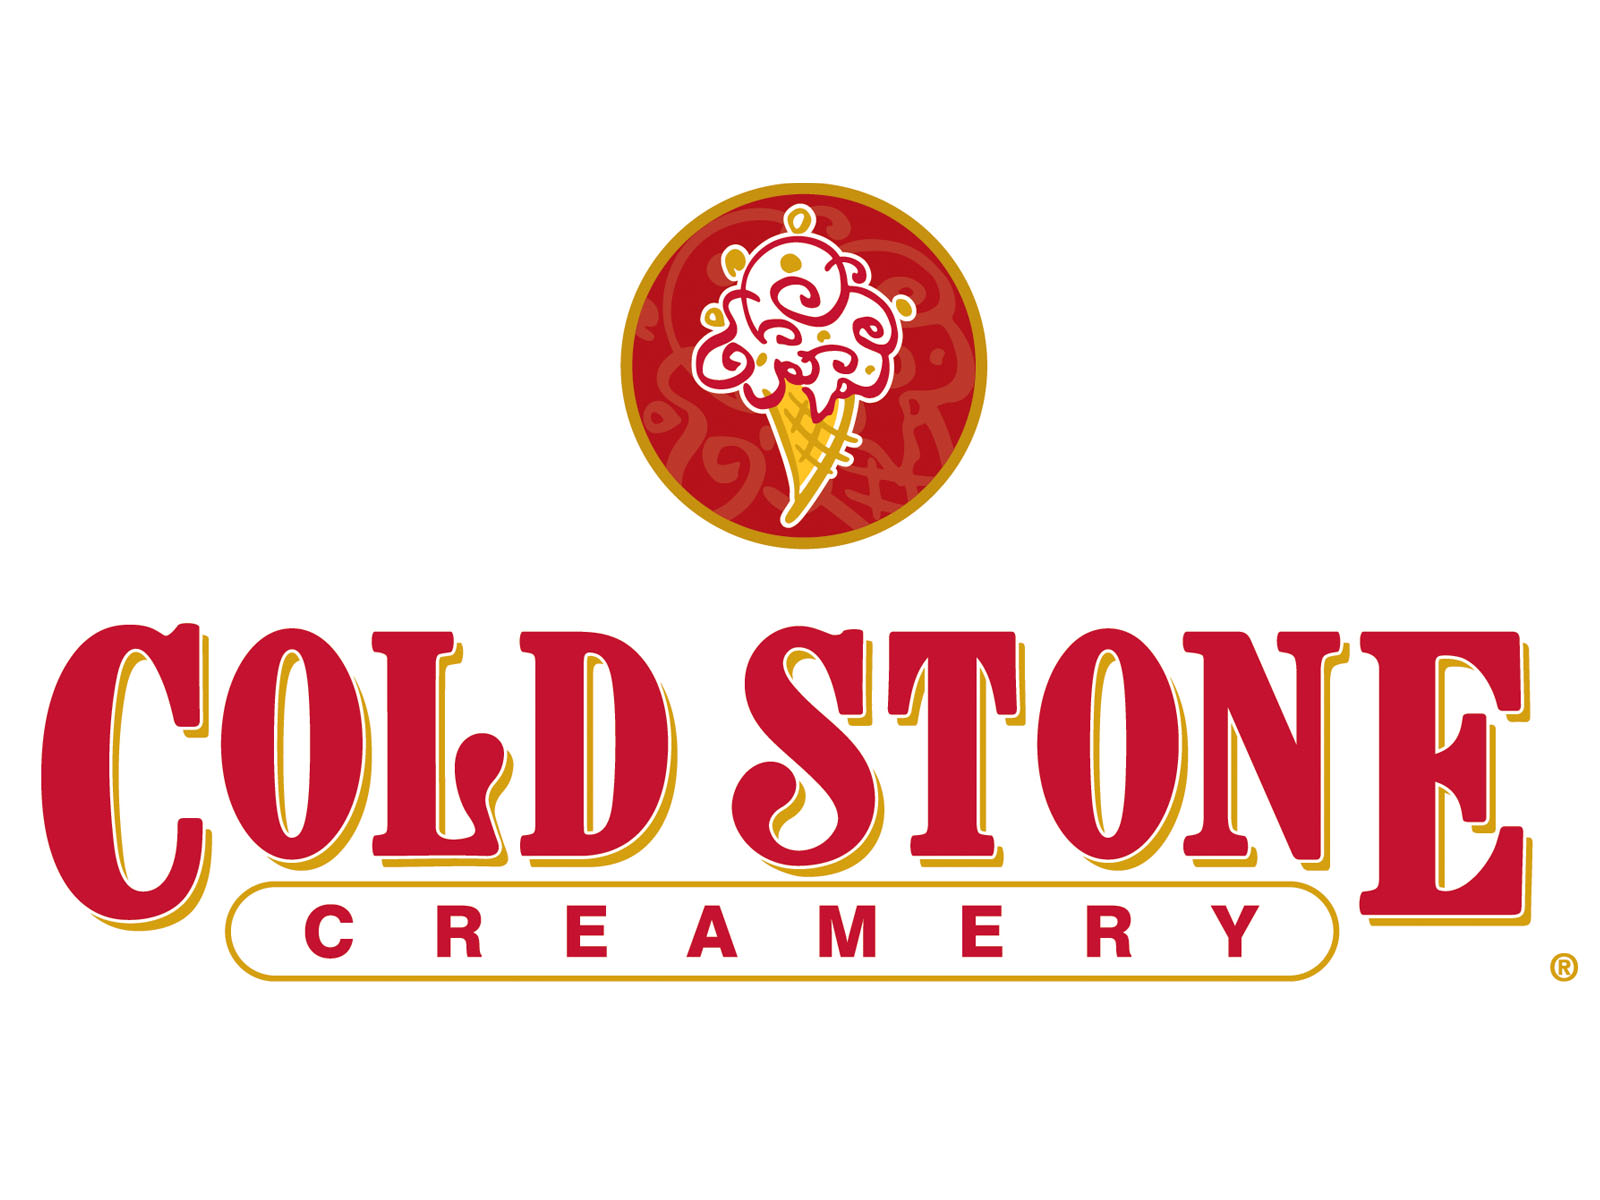 Cold Stone Creamery [Client].jpg